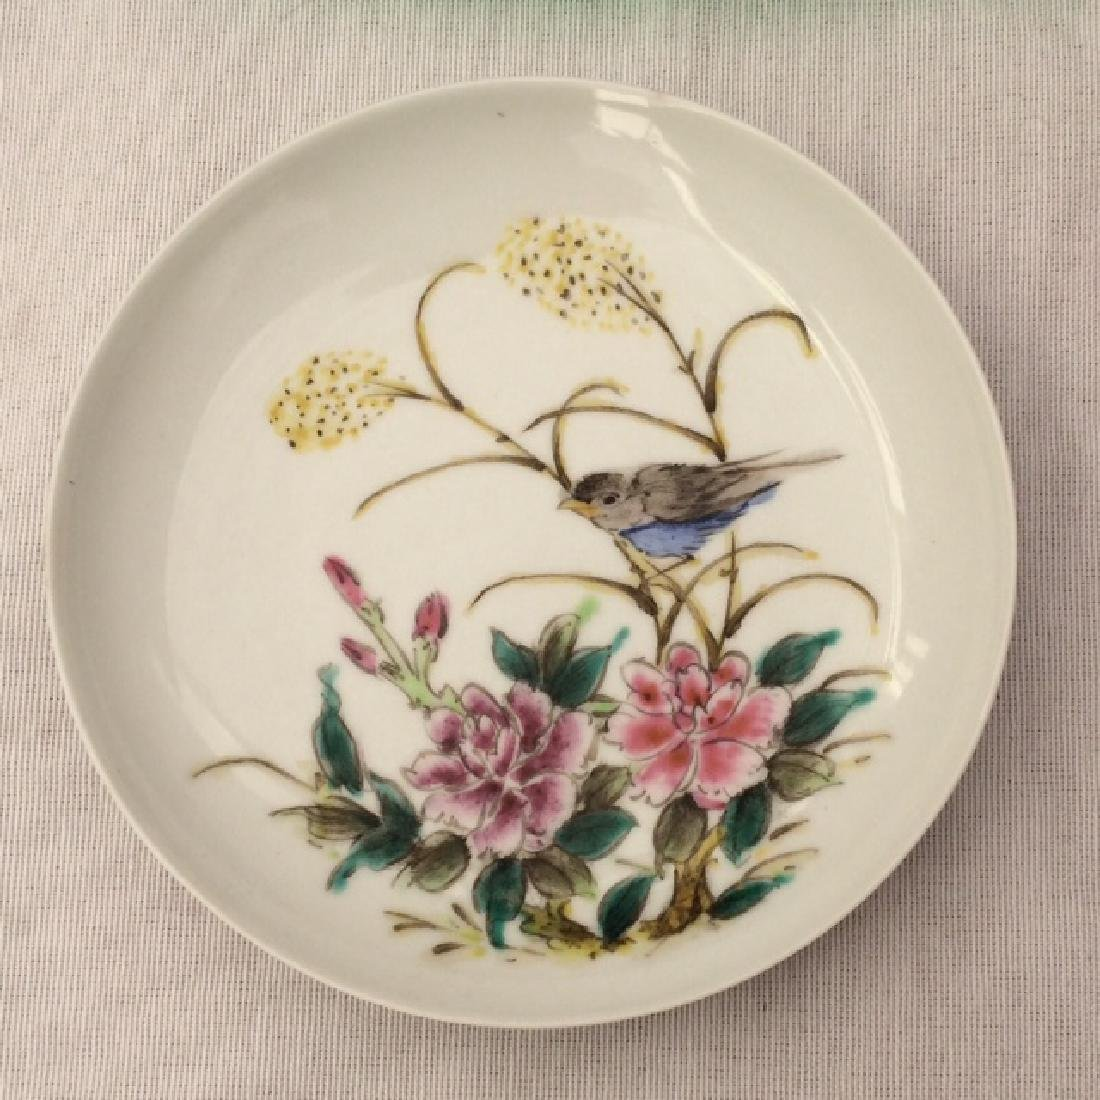 Chinese Qing Dynasty Style Flower & Bird Plate, Leaf